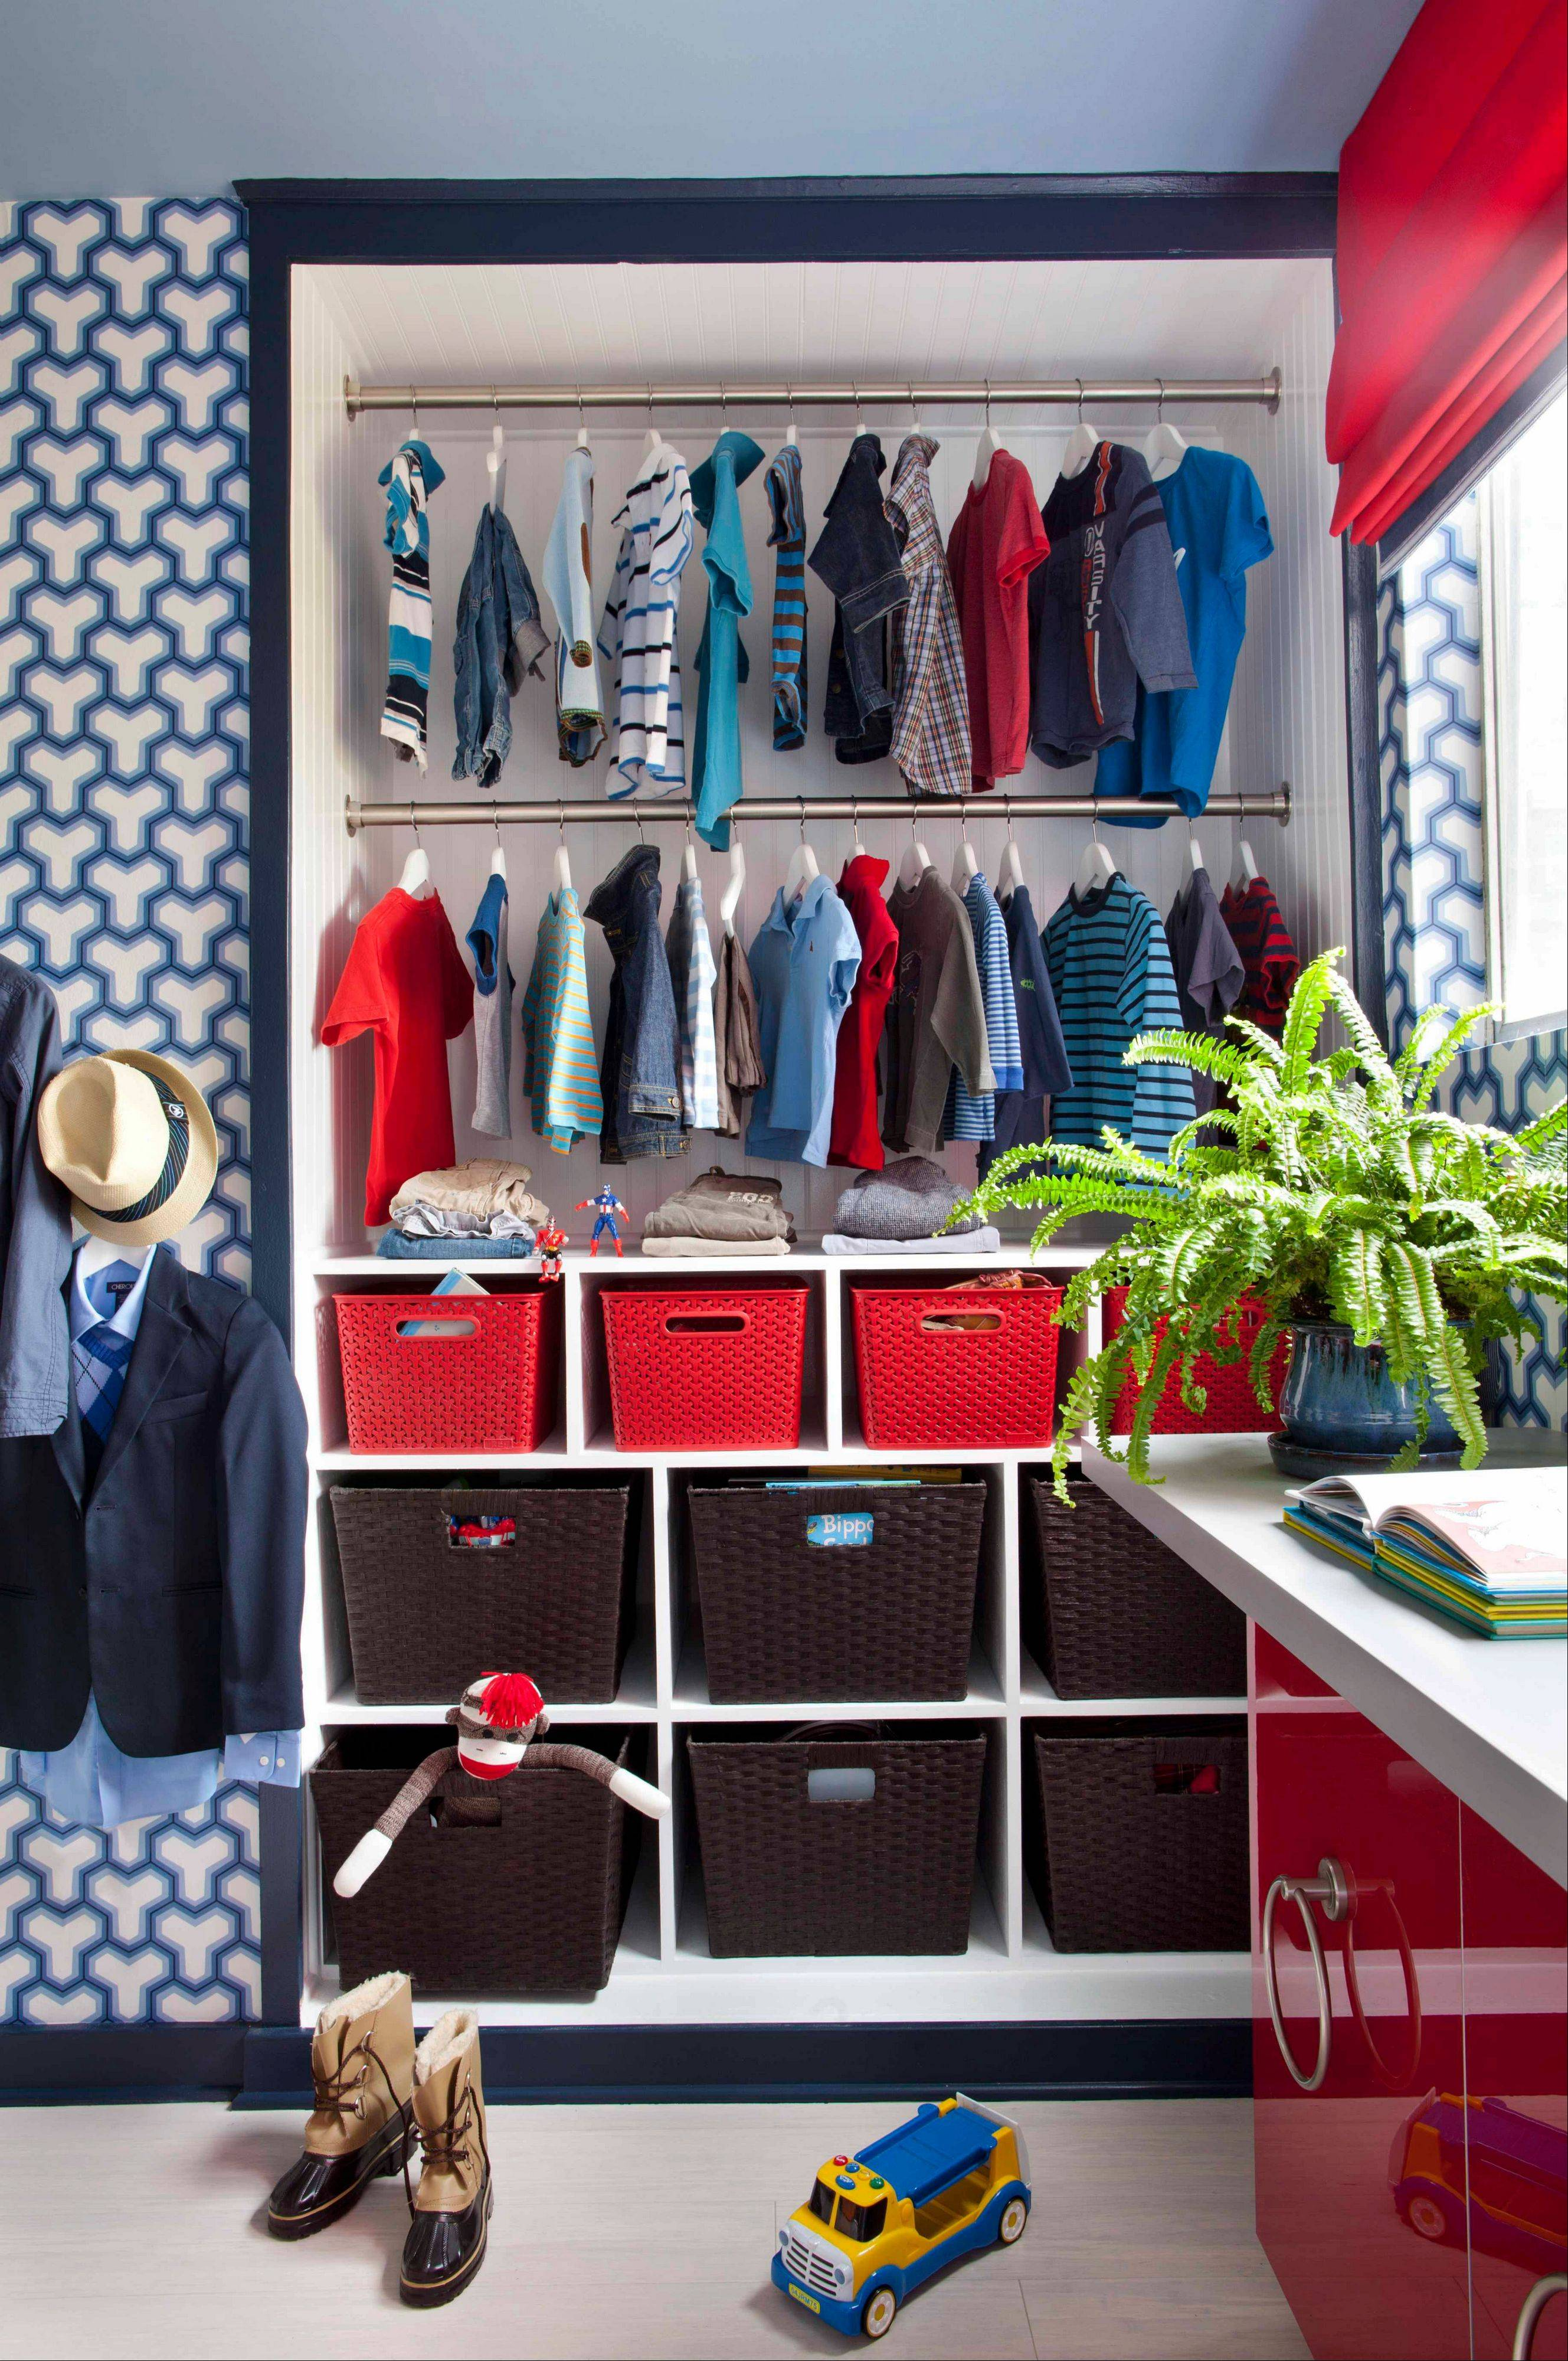 Designer Brian Patrick Flynn used red, white, and blue, in a modern manner for a boy?s room with graphic wallpaper in blue and white, accented with controlled bursts of fire engine red.